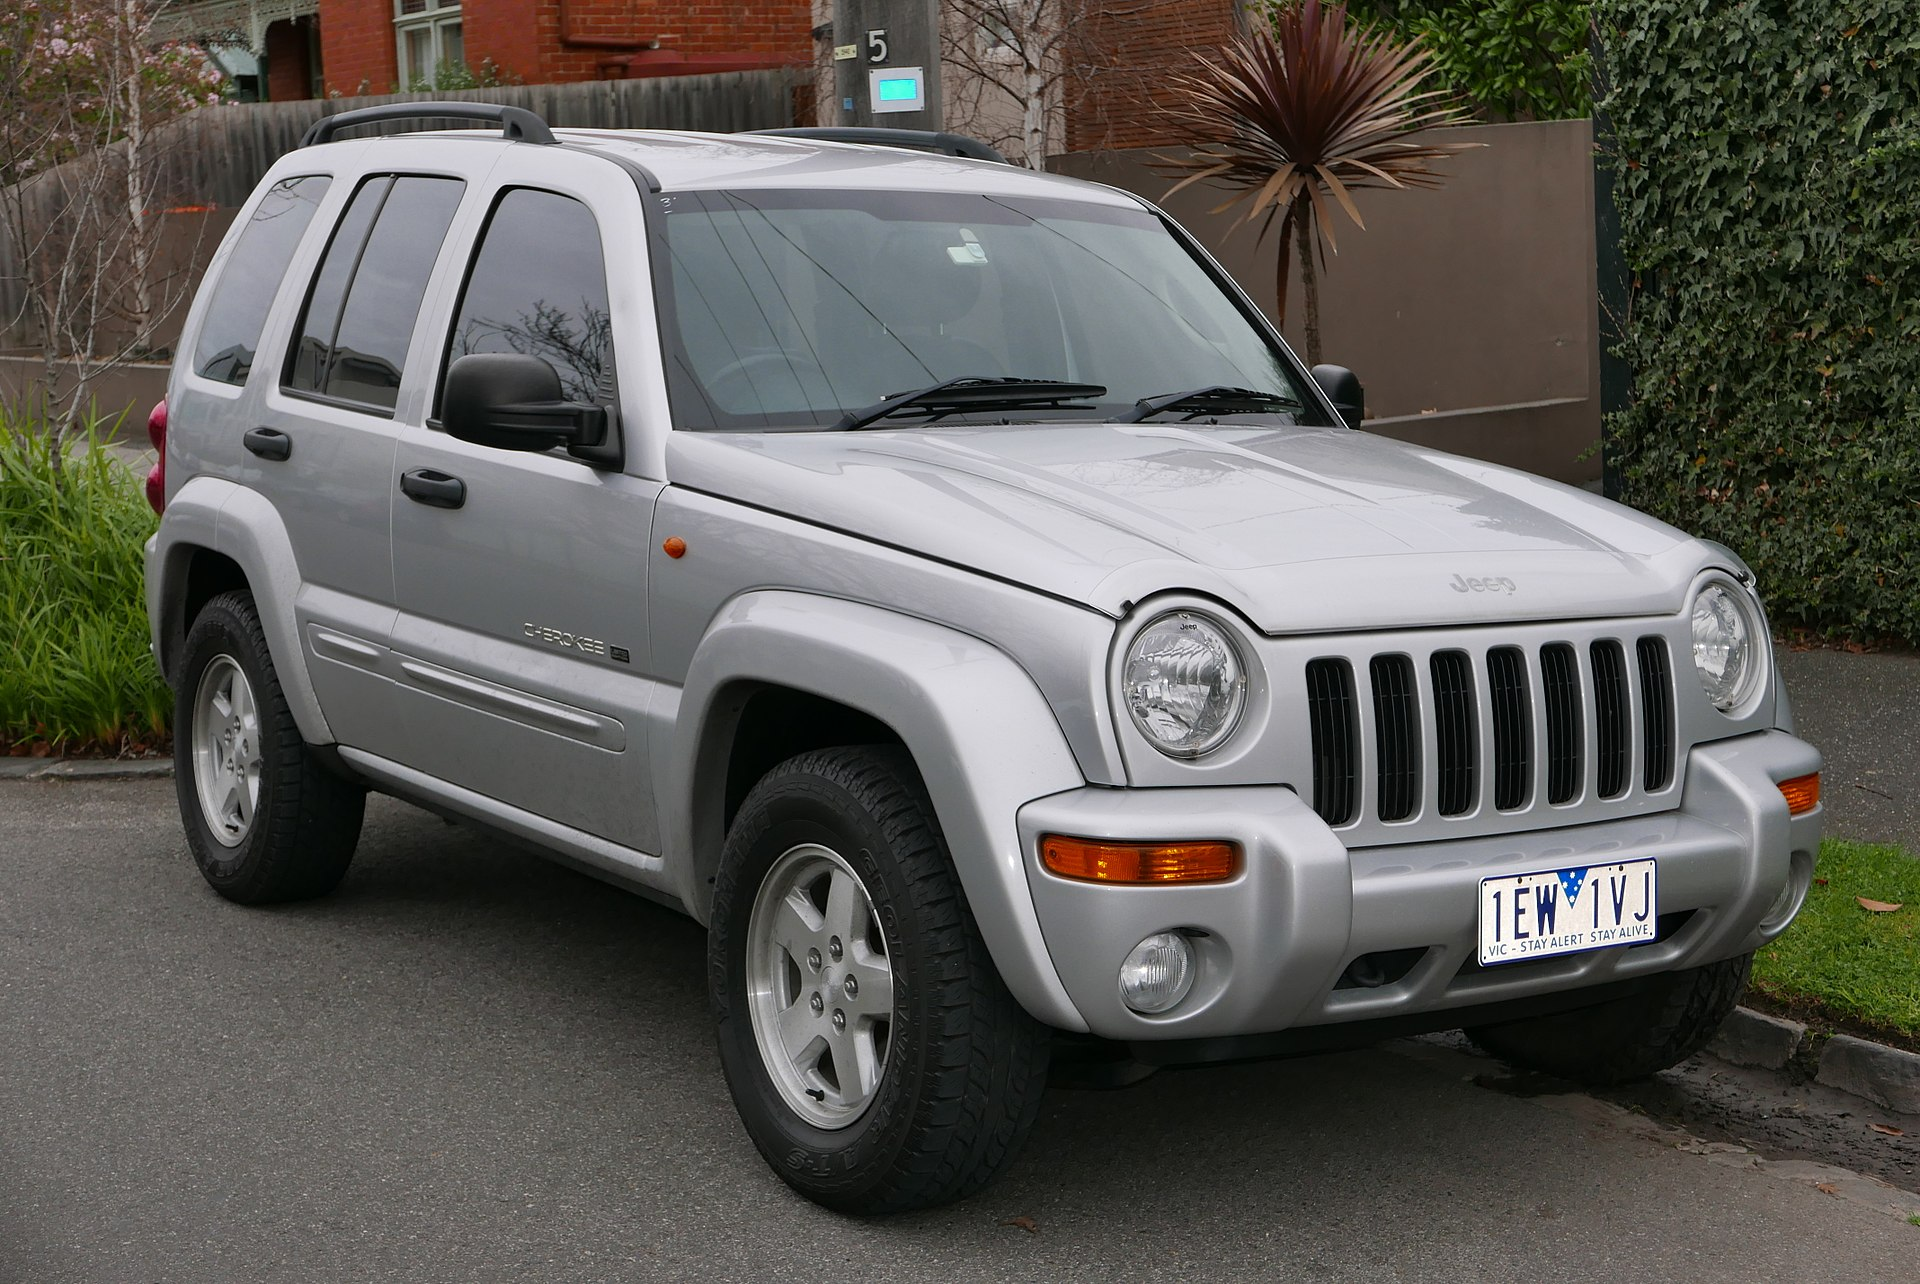 2002 Jeep Liberty Engine Diagram Images